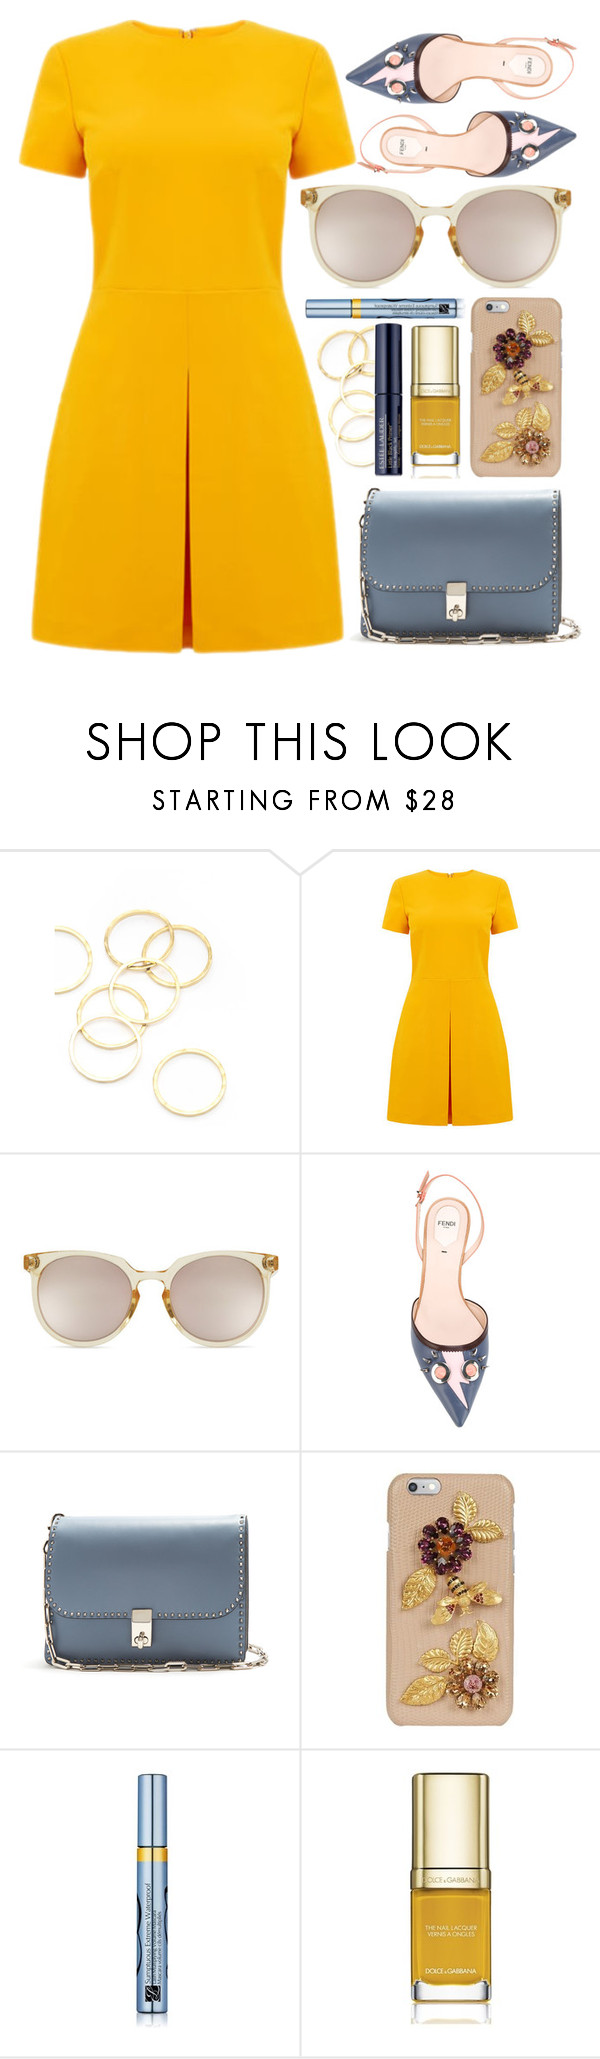 """Sunshine"" by smartbuyglasses-uk ❤ liked on Polyvore featuring A.V. Max, Warehouse, Quay, Fendi, Valentino, Dolce&Gabbana, Estée Lauder, yellow and Blue"